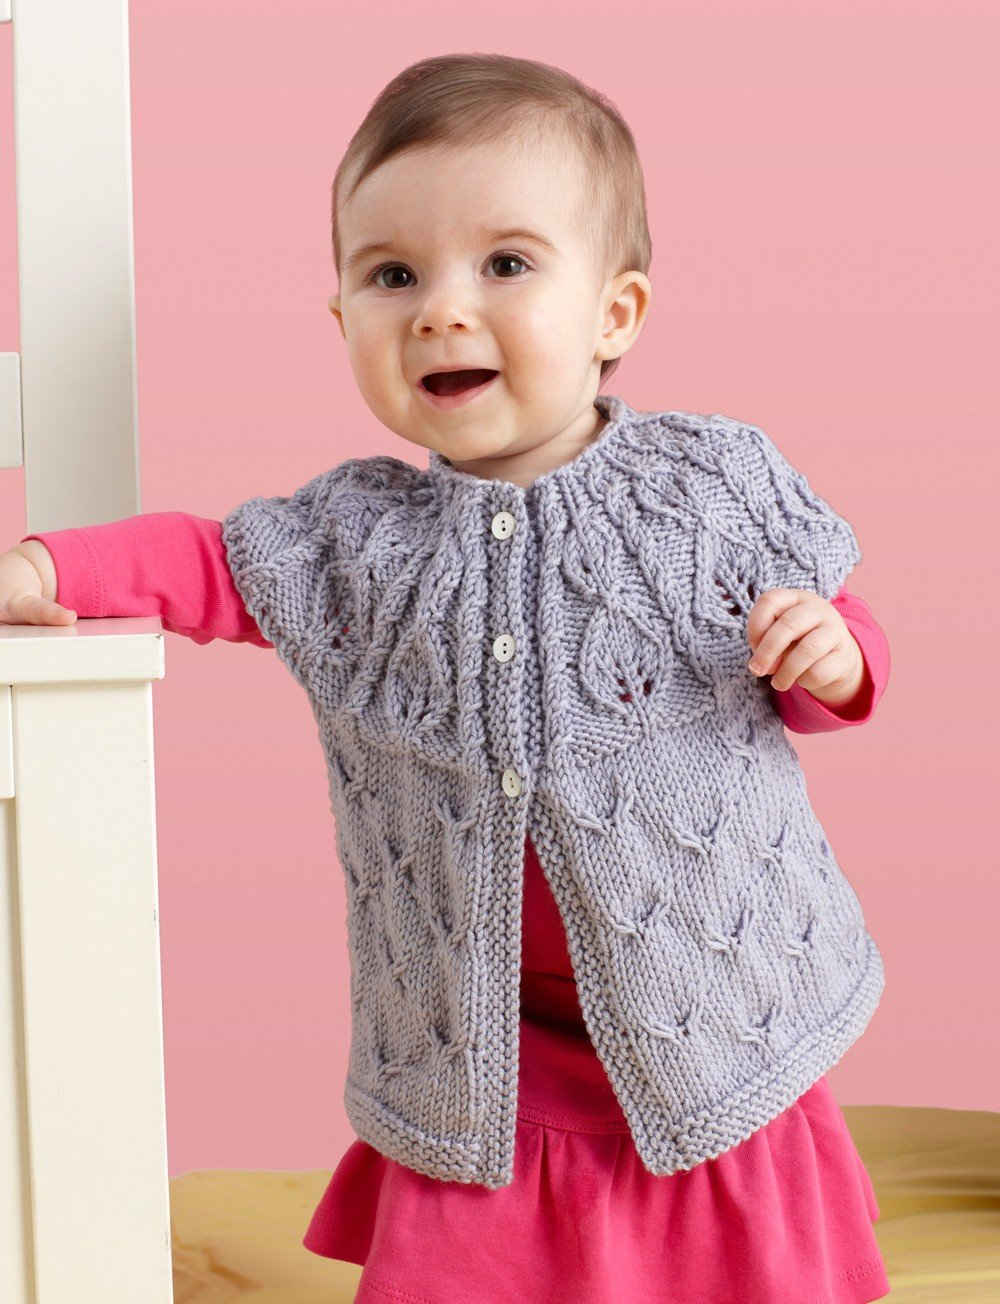 Free Knitting Pattern For Cardigan : 10+ Free Baby Sweater Knitting Patterns